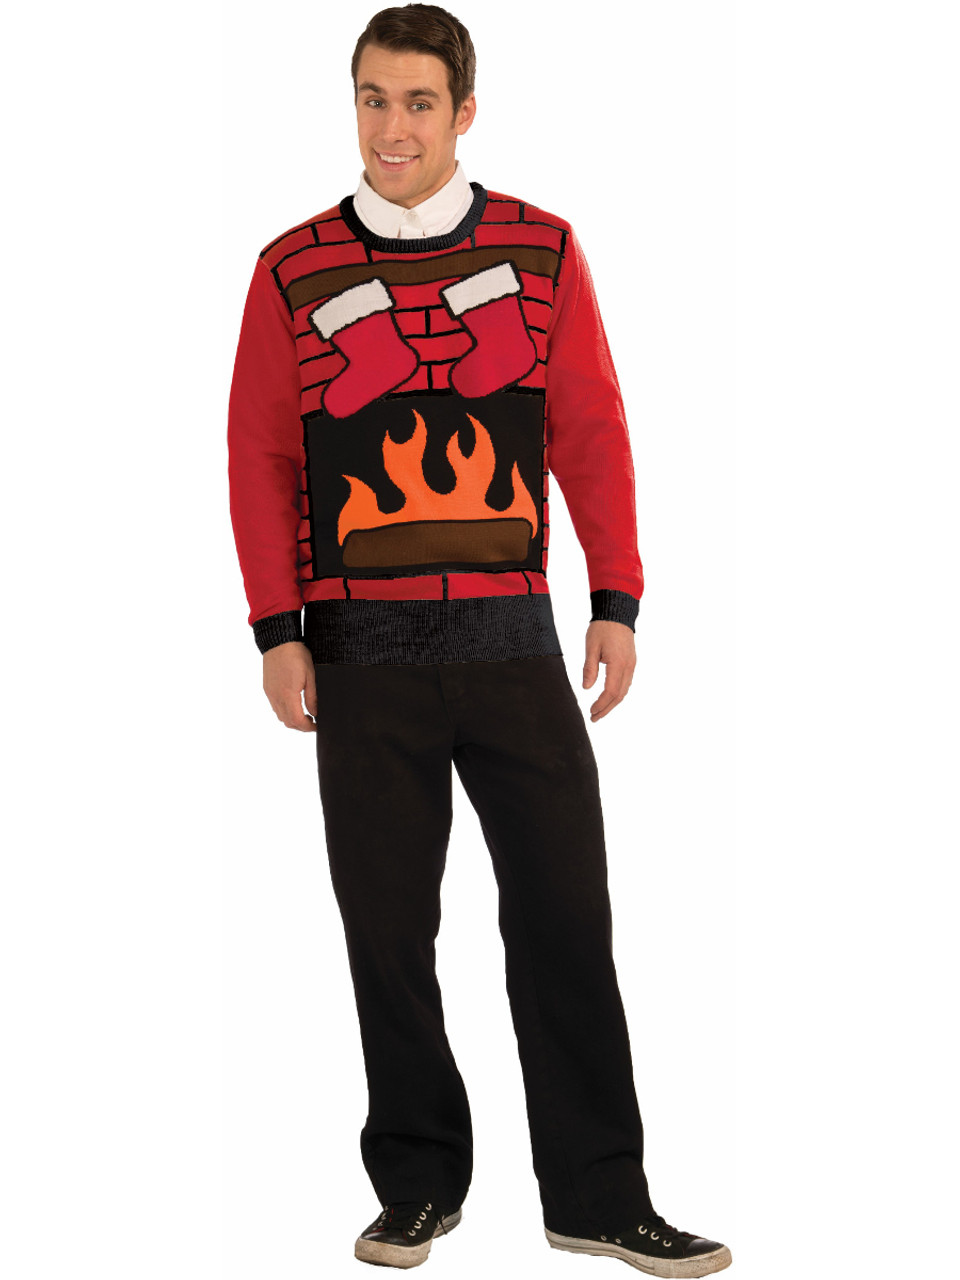 2 Person Christmas Sweater.Christmas Eve Fireplace Sweater